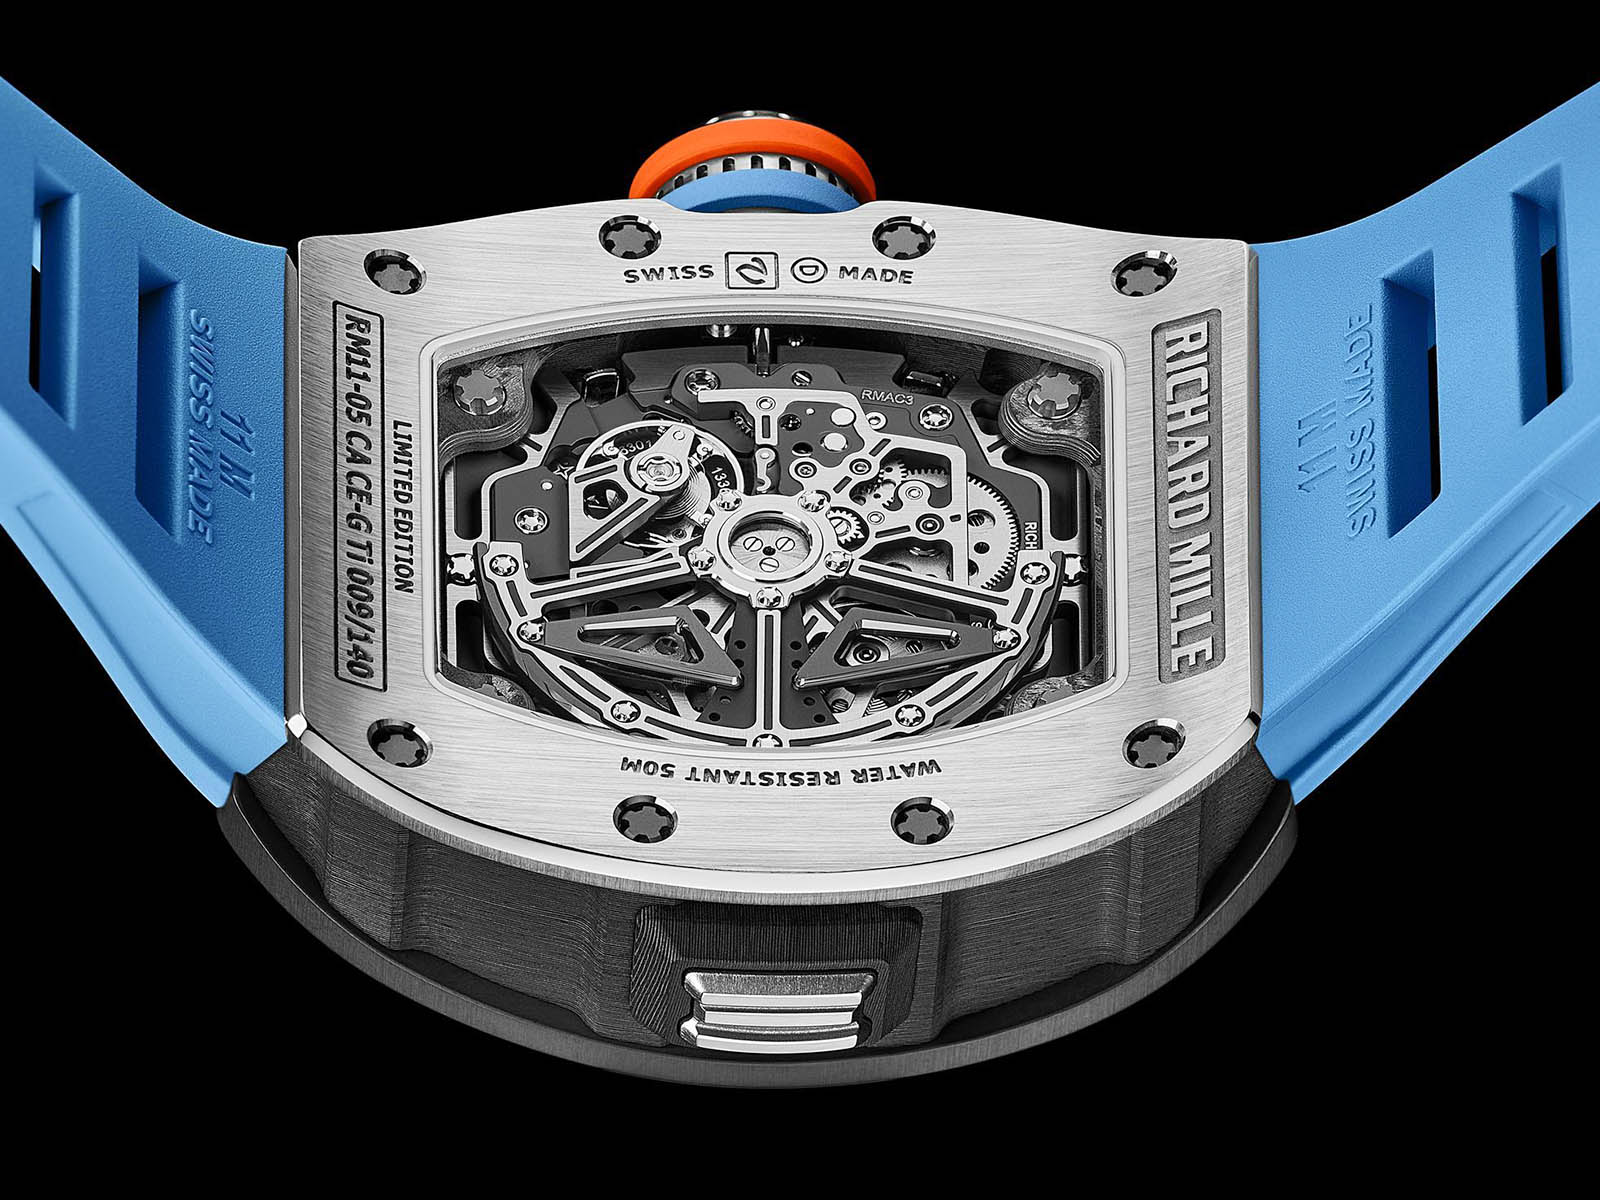 rm-11-05-richard-mille-automatic-flyback-chronograph-gmt-cermet-8.jpg